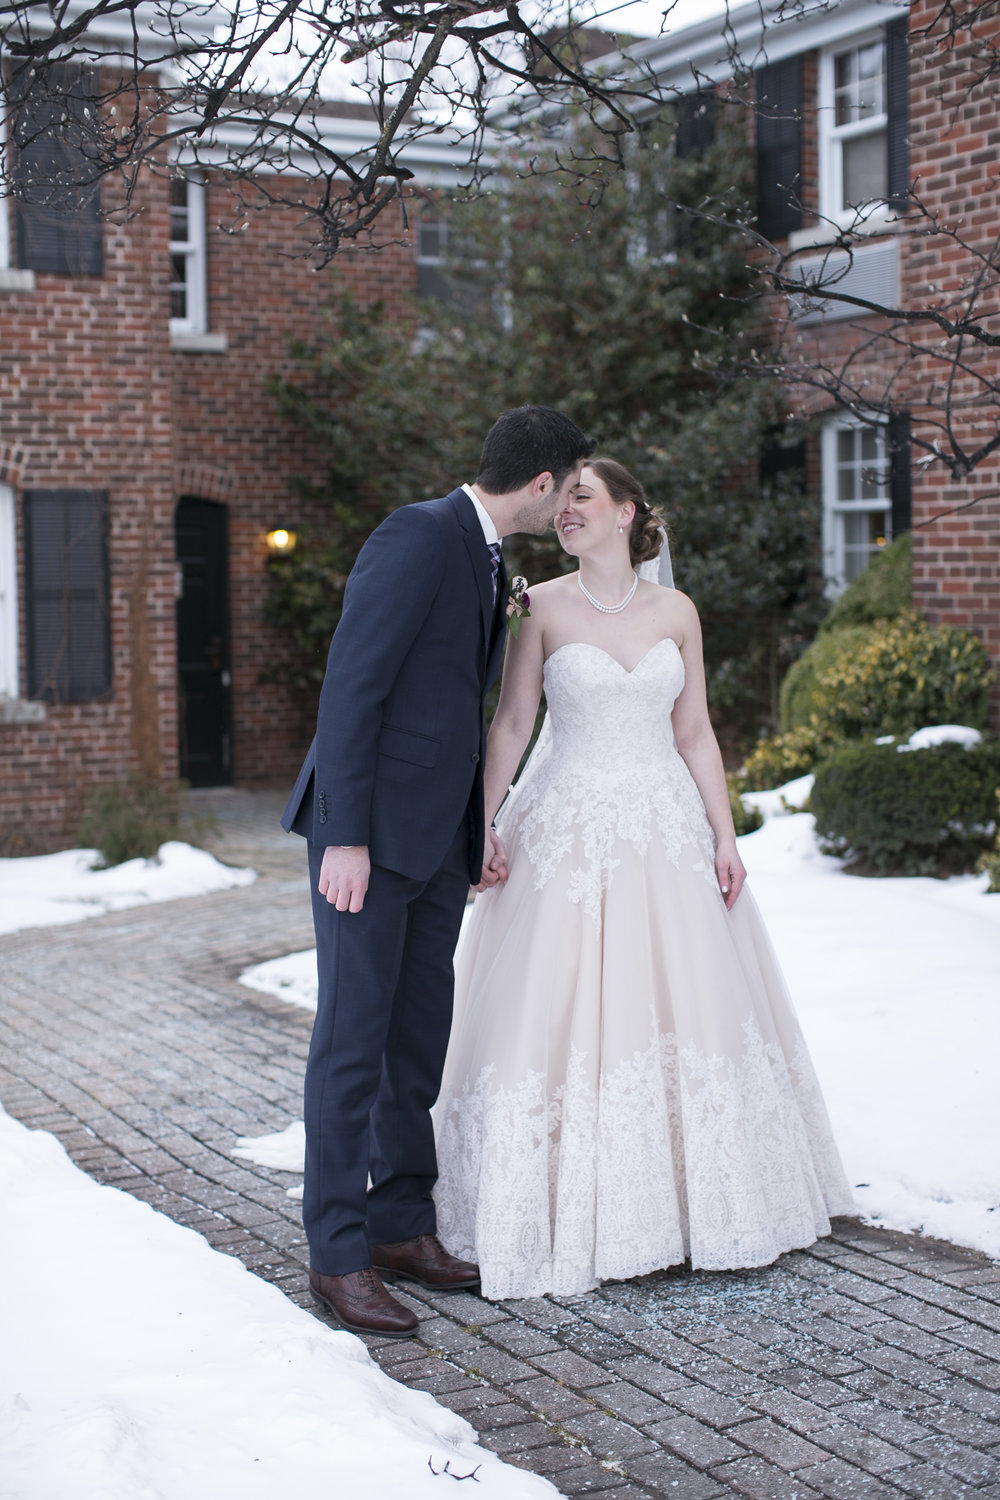 Niagara-Wedding-Photographers-Pillar-and-Post-Wedding-Niagara-on-the-Lake-Winter-Wedding-photography-by-Eva-Derrick-Photography-033.JPG